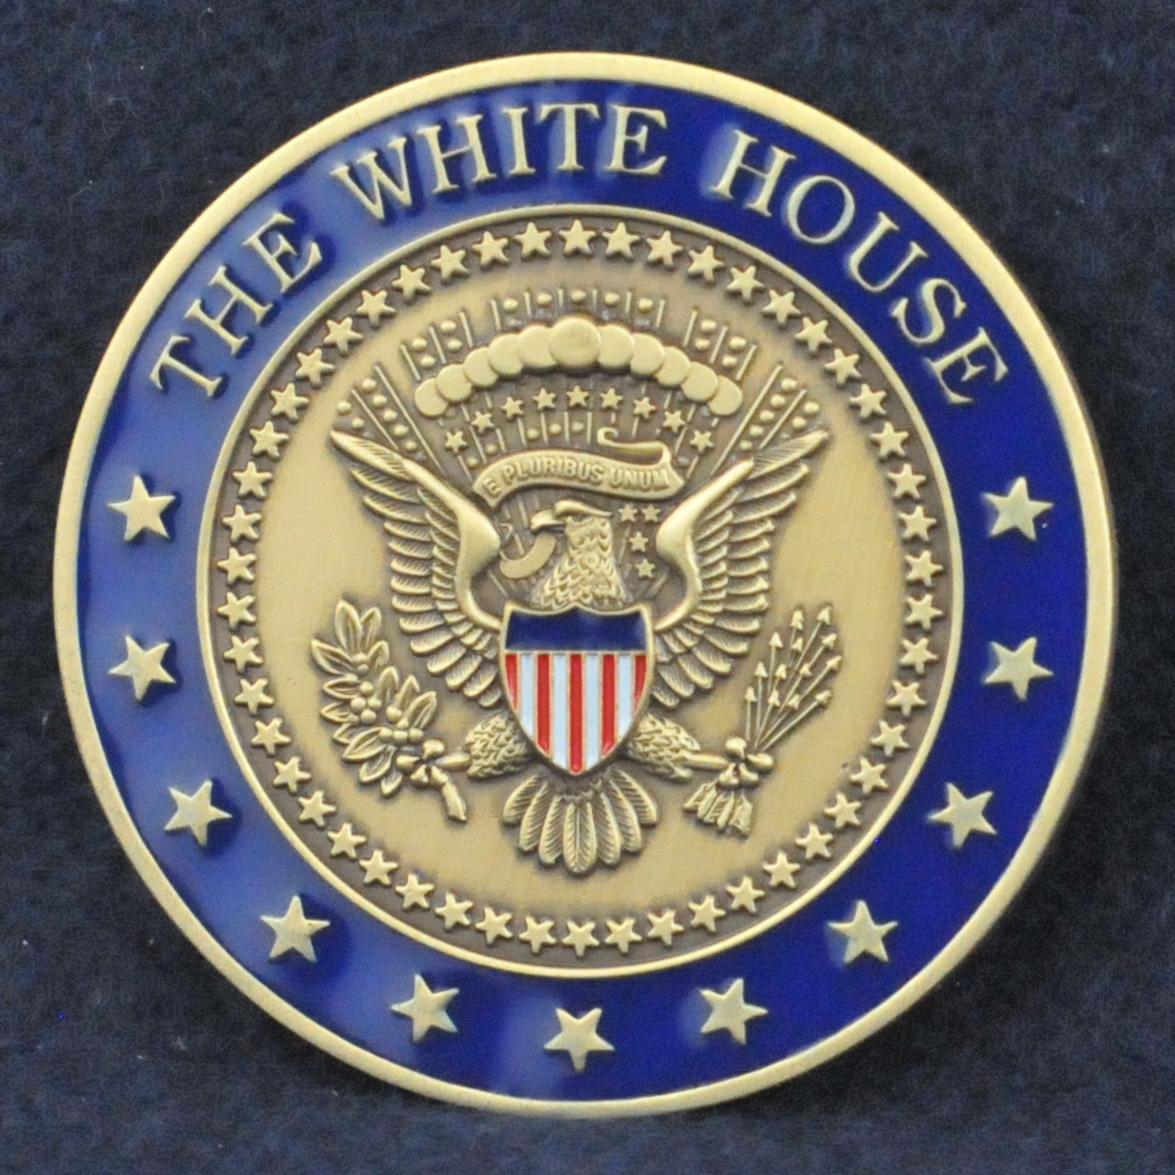 u s secret service essay To start the application process you should visit the view all career opportunities page or explore you are consenting to background investigation by the united states government and go to the us secret service web site for information about the nigerian advance fee.